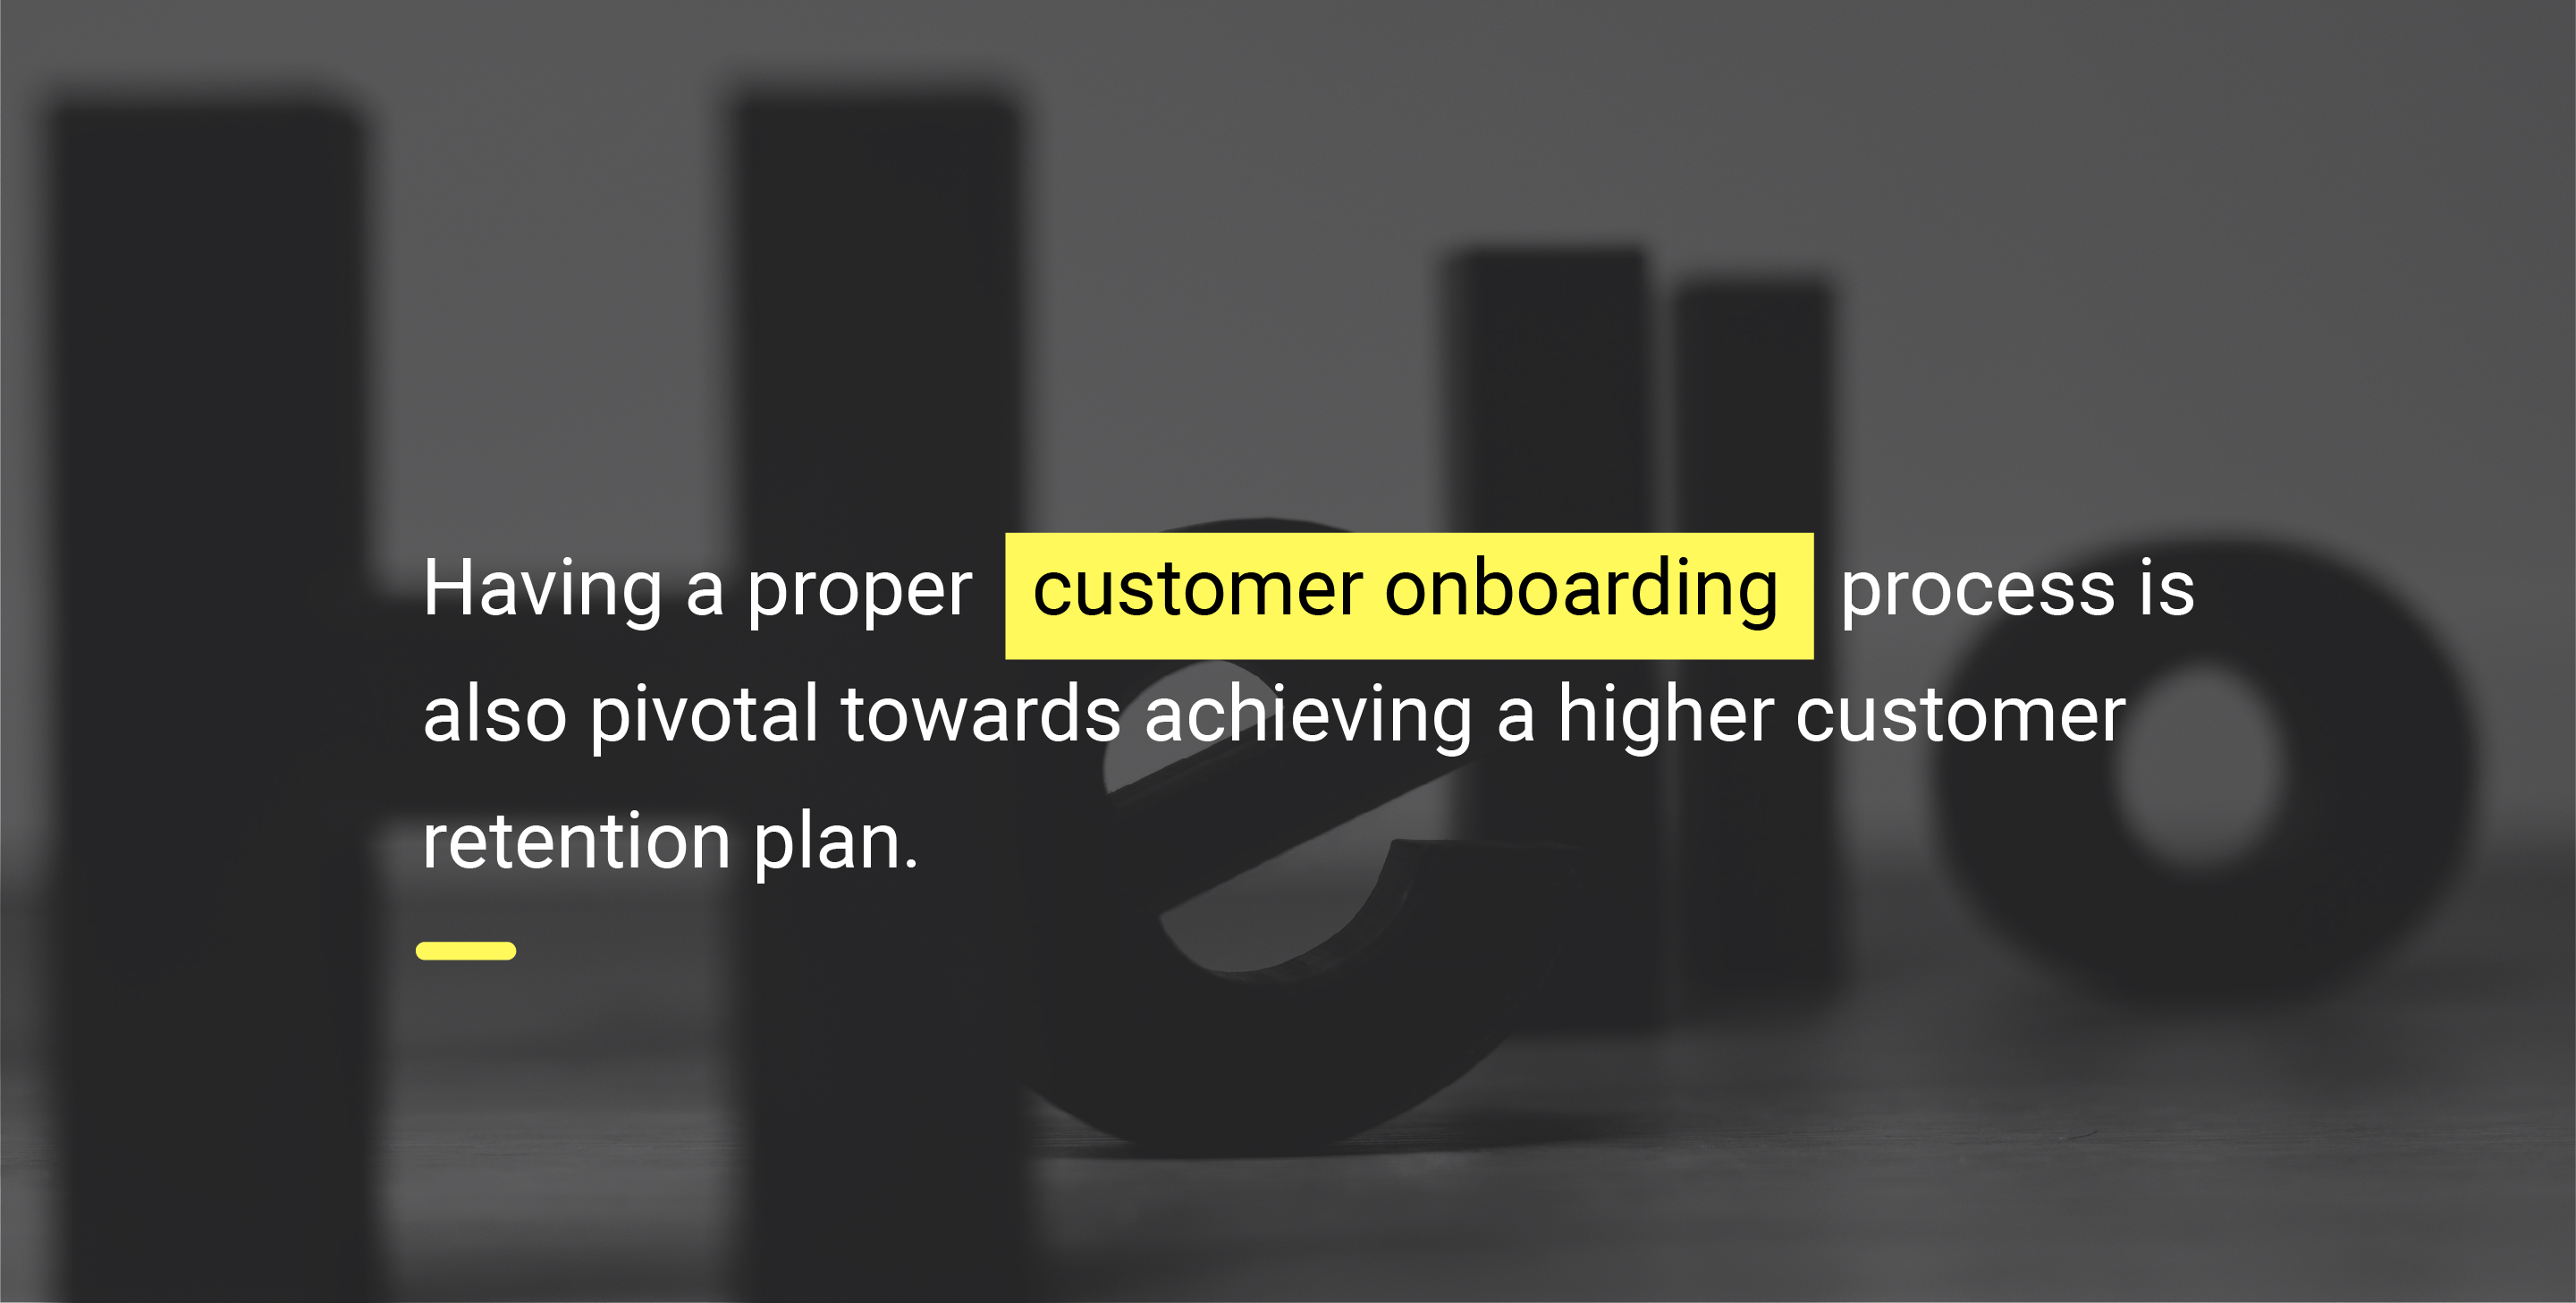 Having a proper customer onboarding process is also pivotal towards achieving a higher customer retention plan.